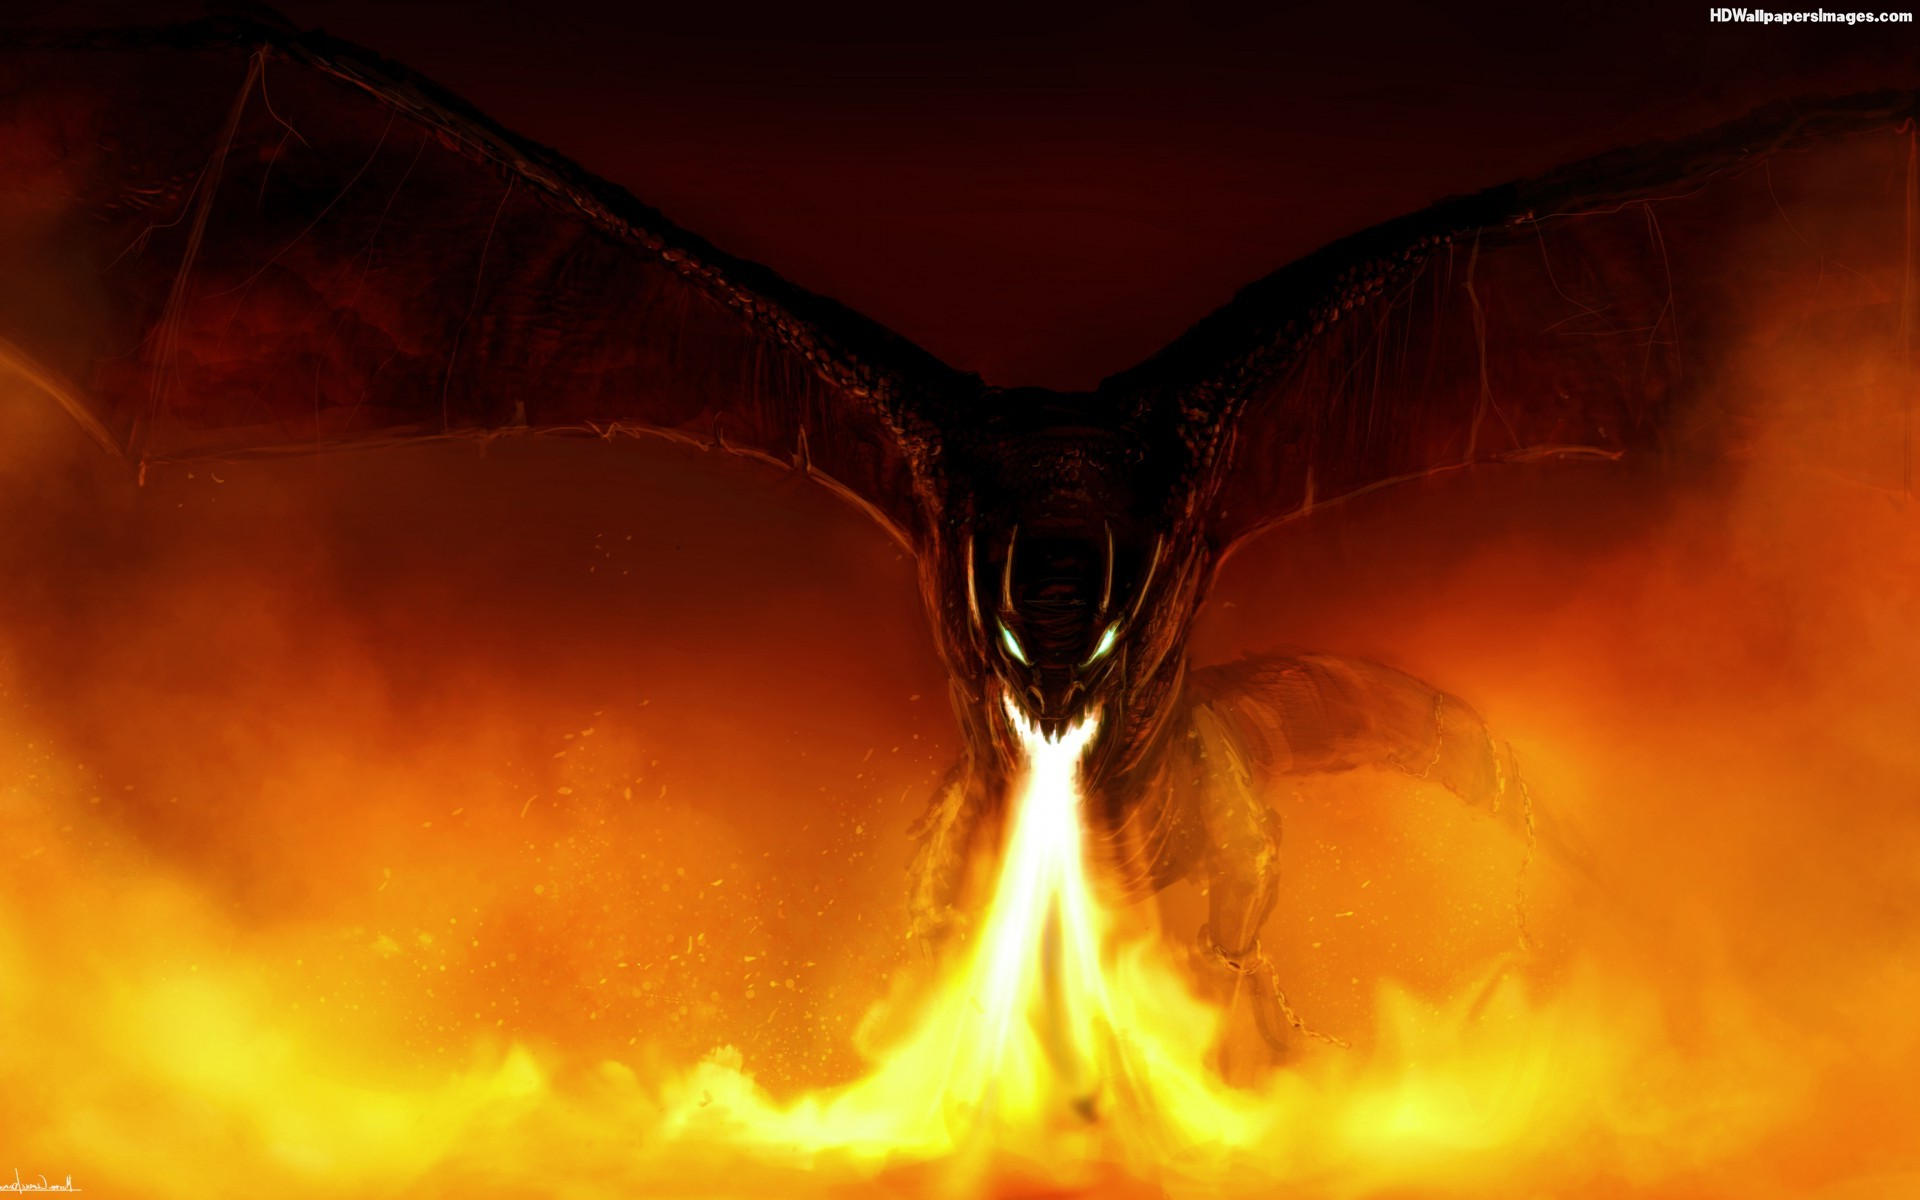 Fire Breathing Dragon Wallpaper